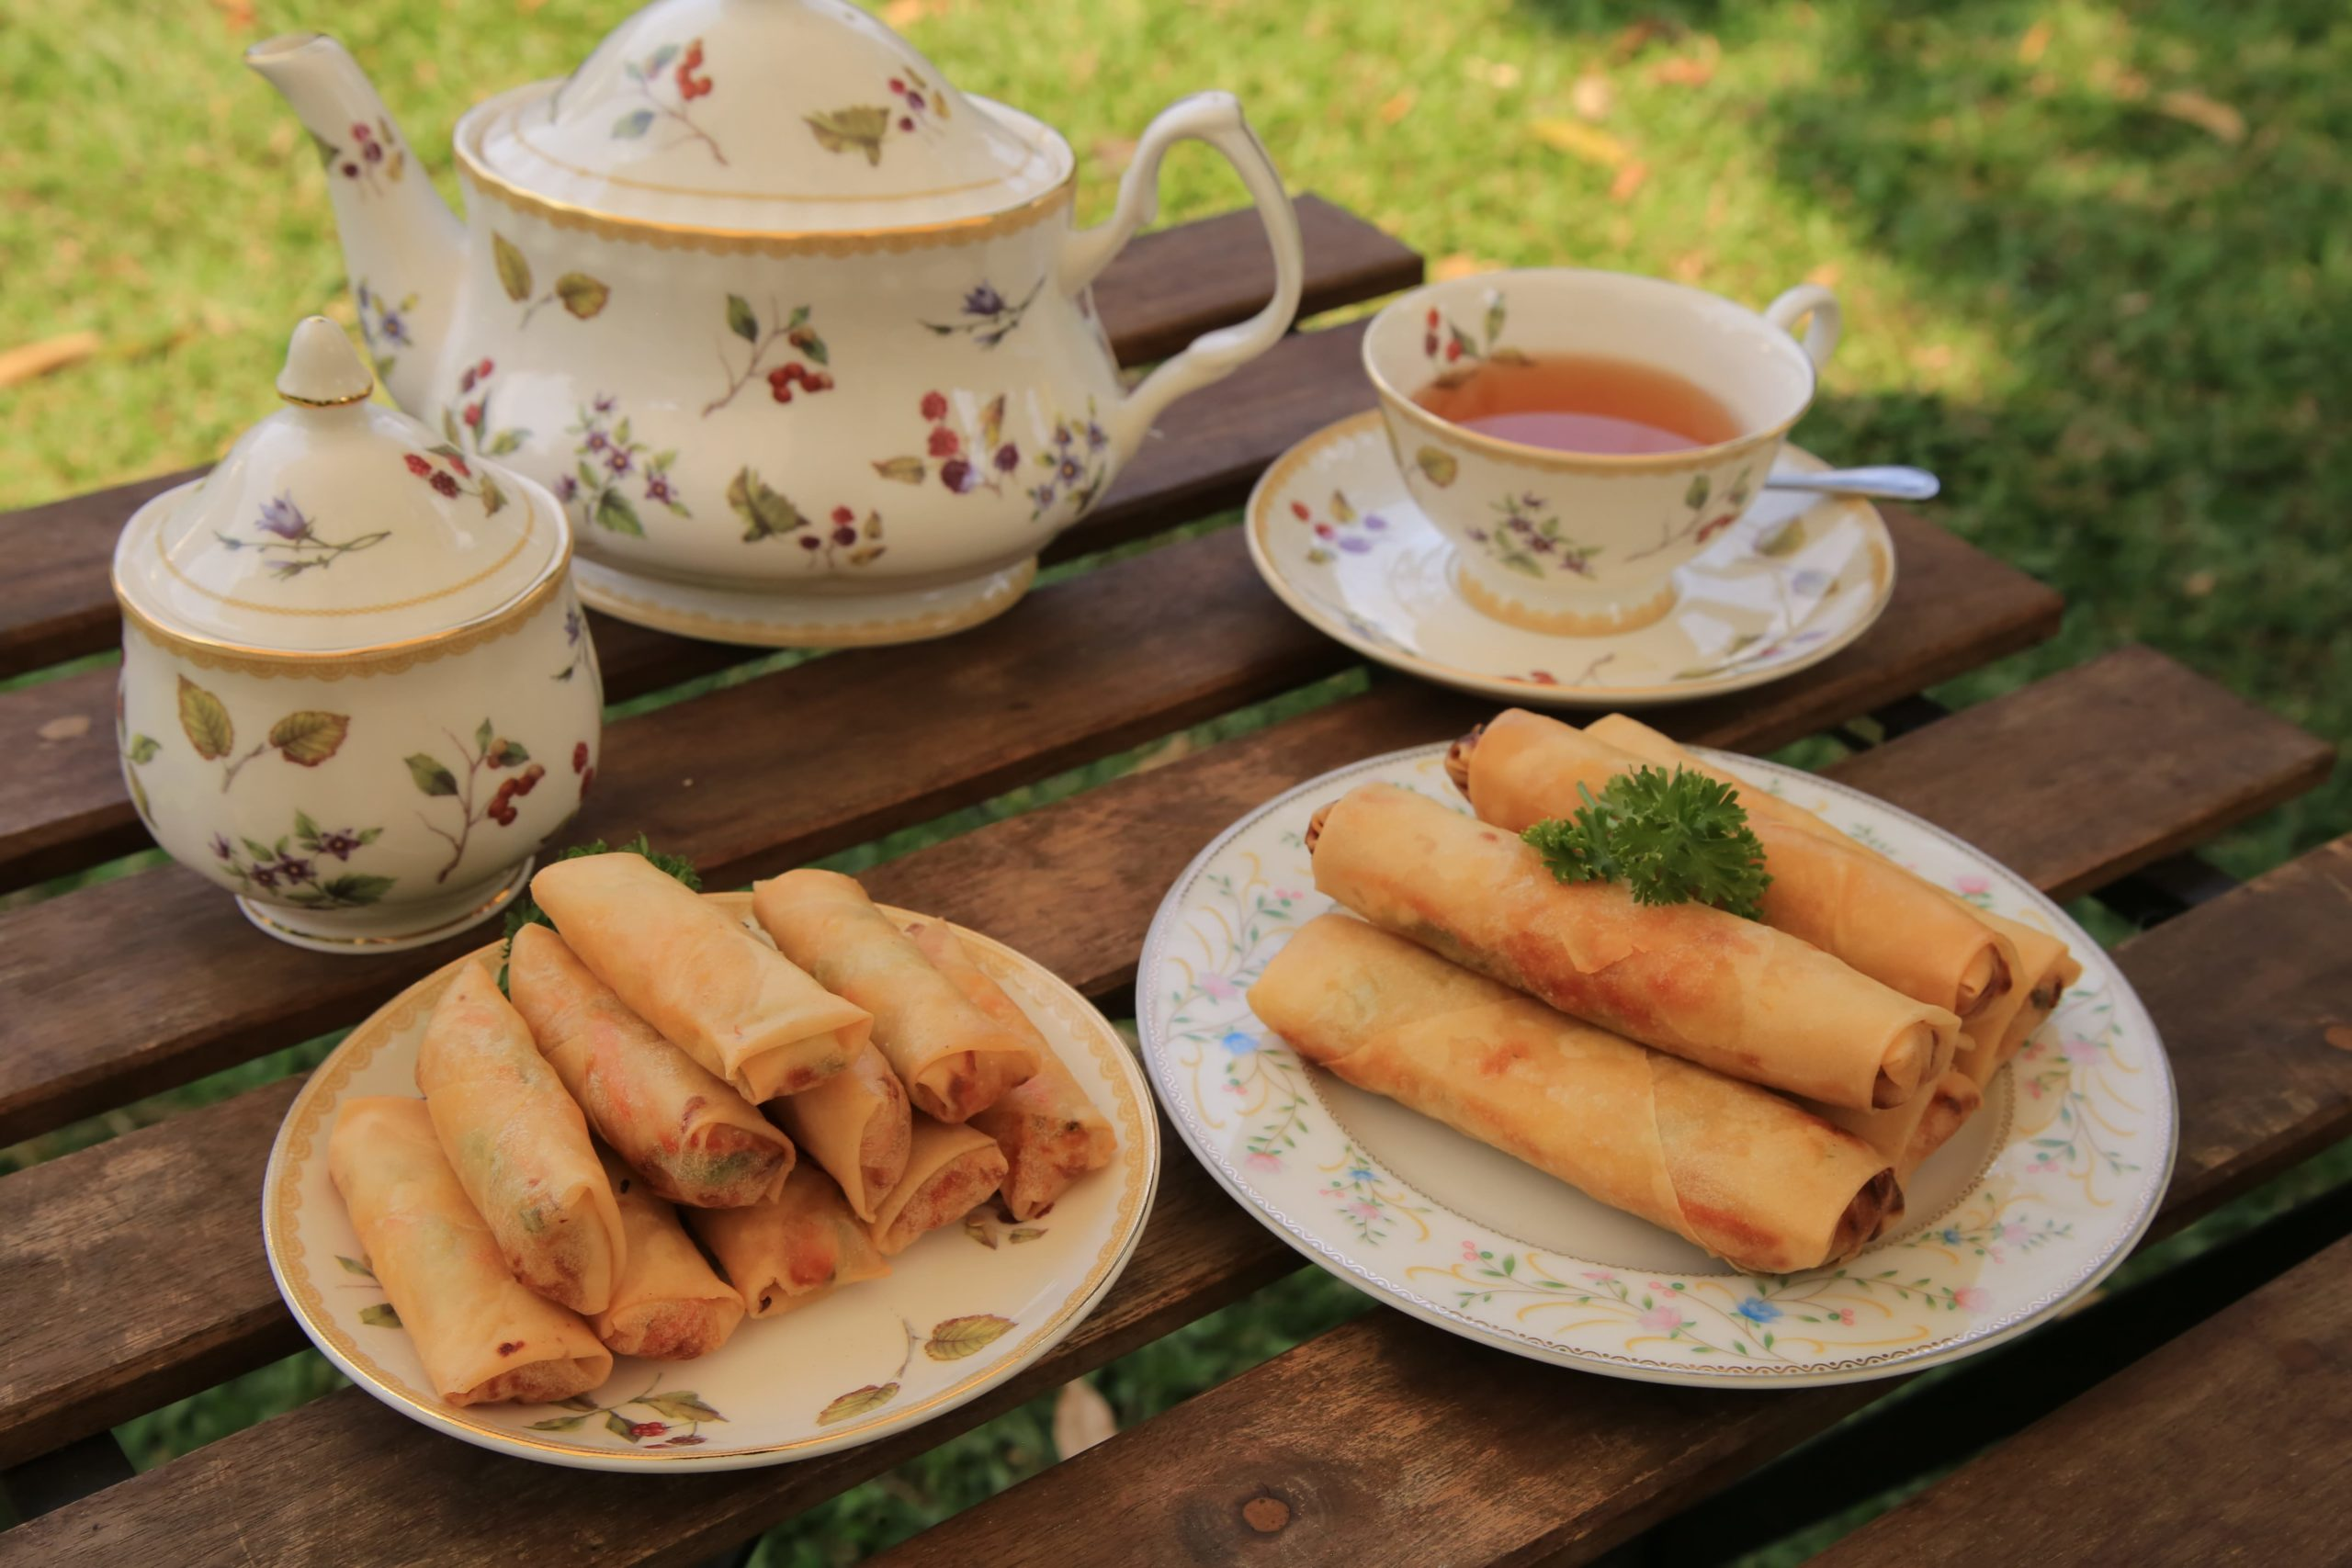 Lumpia or spring rools by Ku-dab